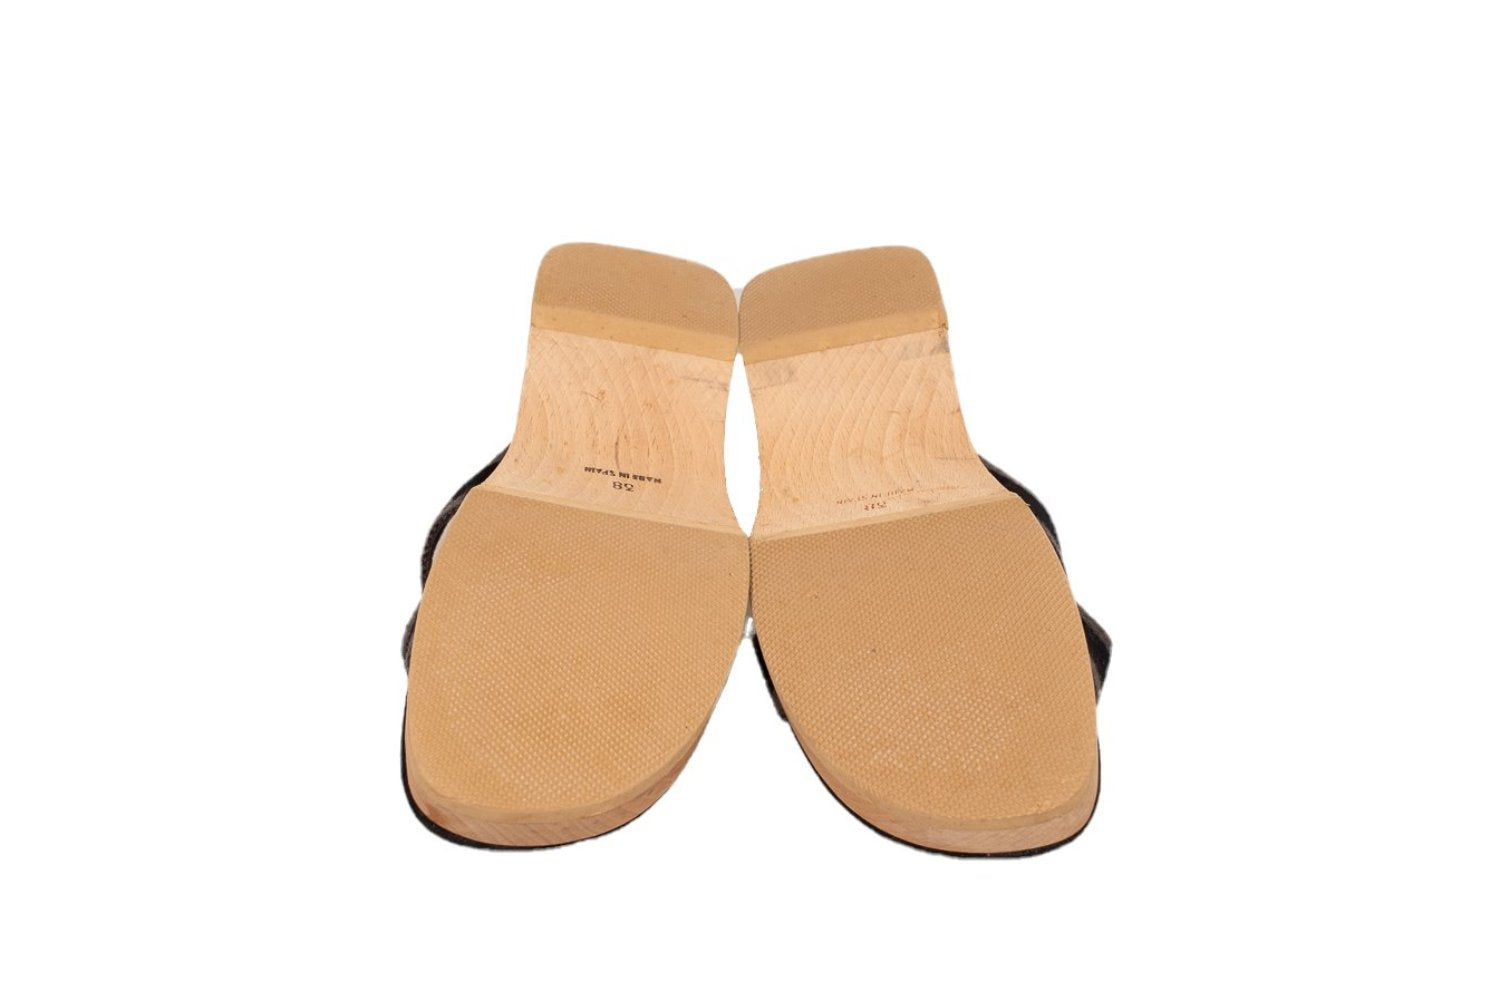 02048b2836aa ... Hermes Fourre Tout Low Wooden Wedge Mules 38 EU Slide Sandals Shoes sl